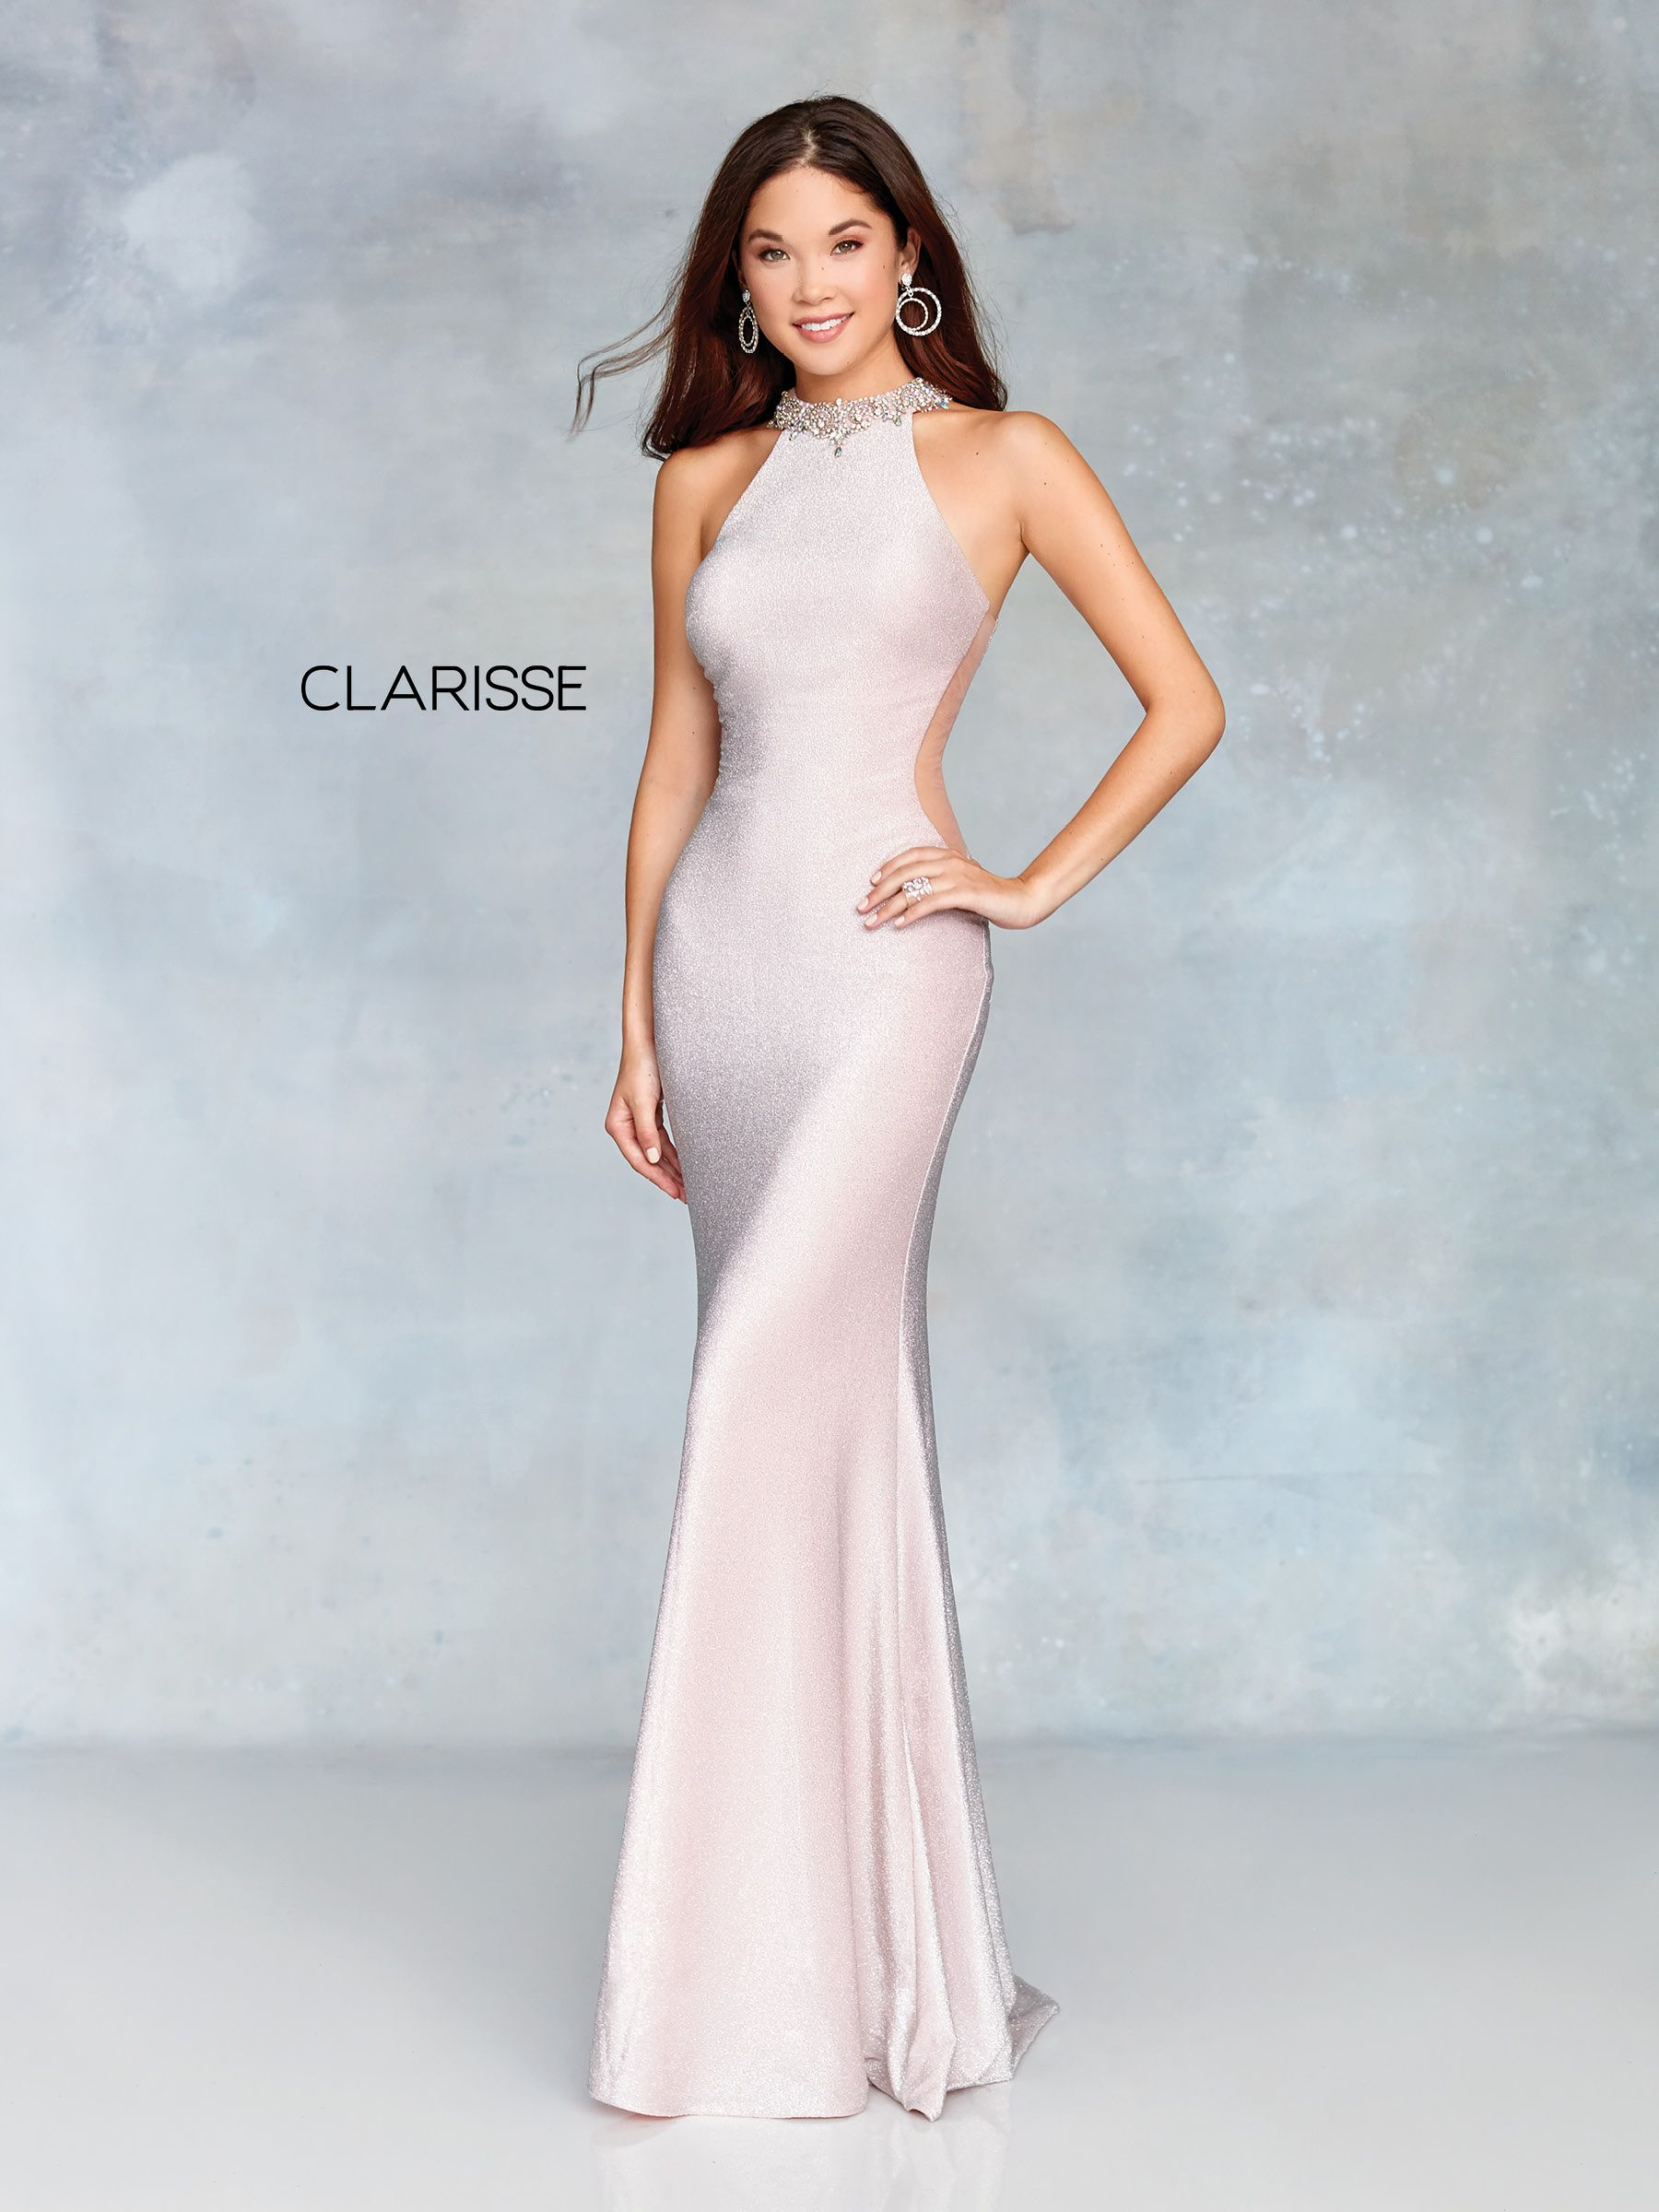 3745 - Blush shimmer jersey prom dress with a beaded detail halter neck and  an open back 7e06a2ddf530